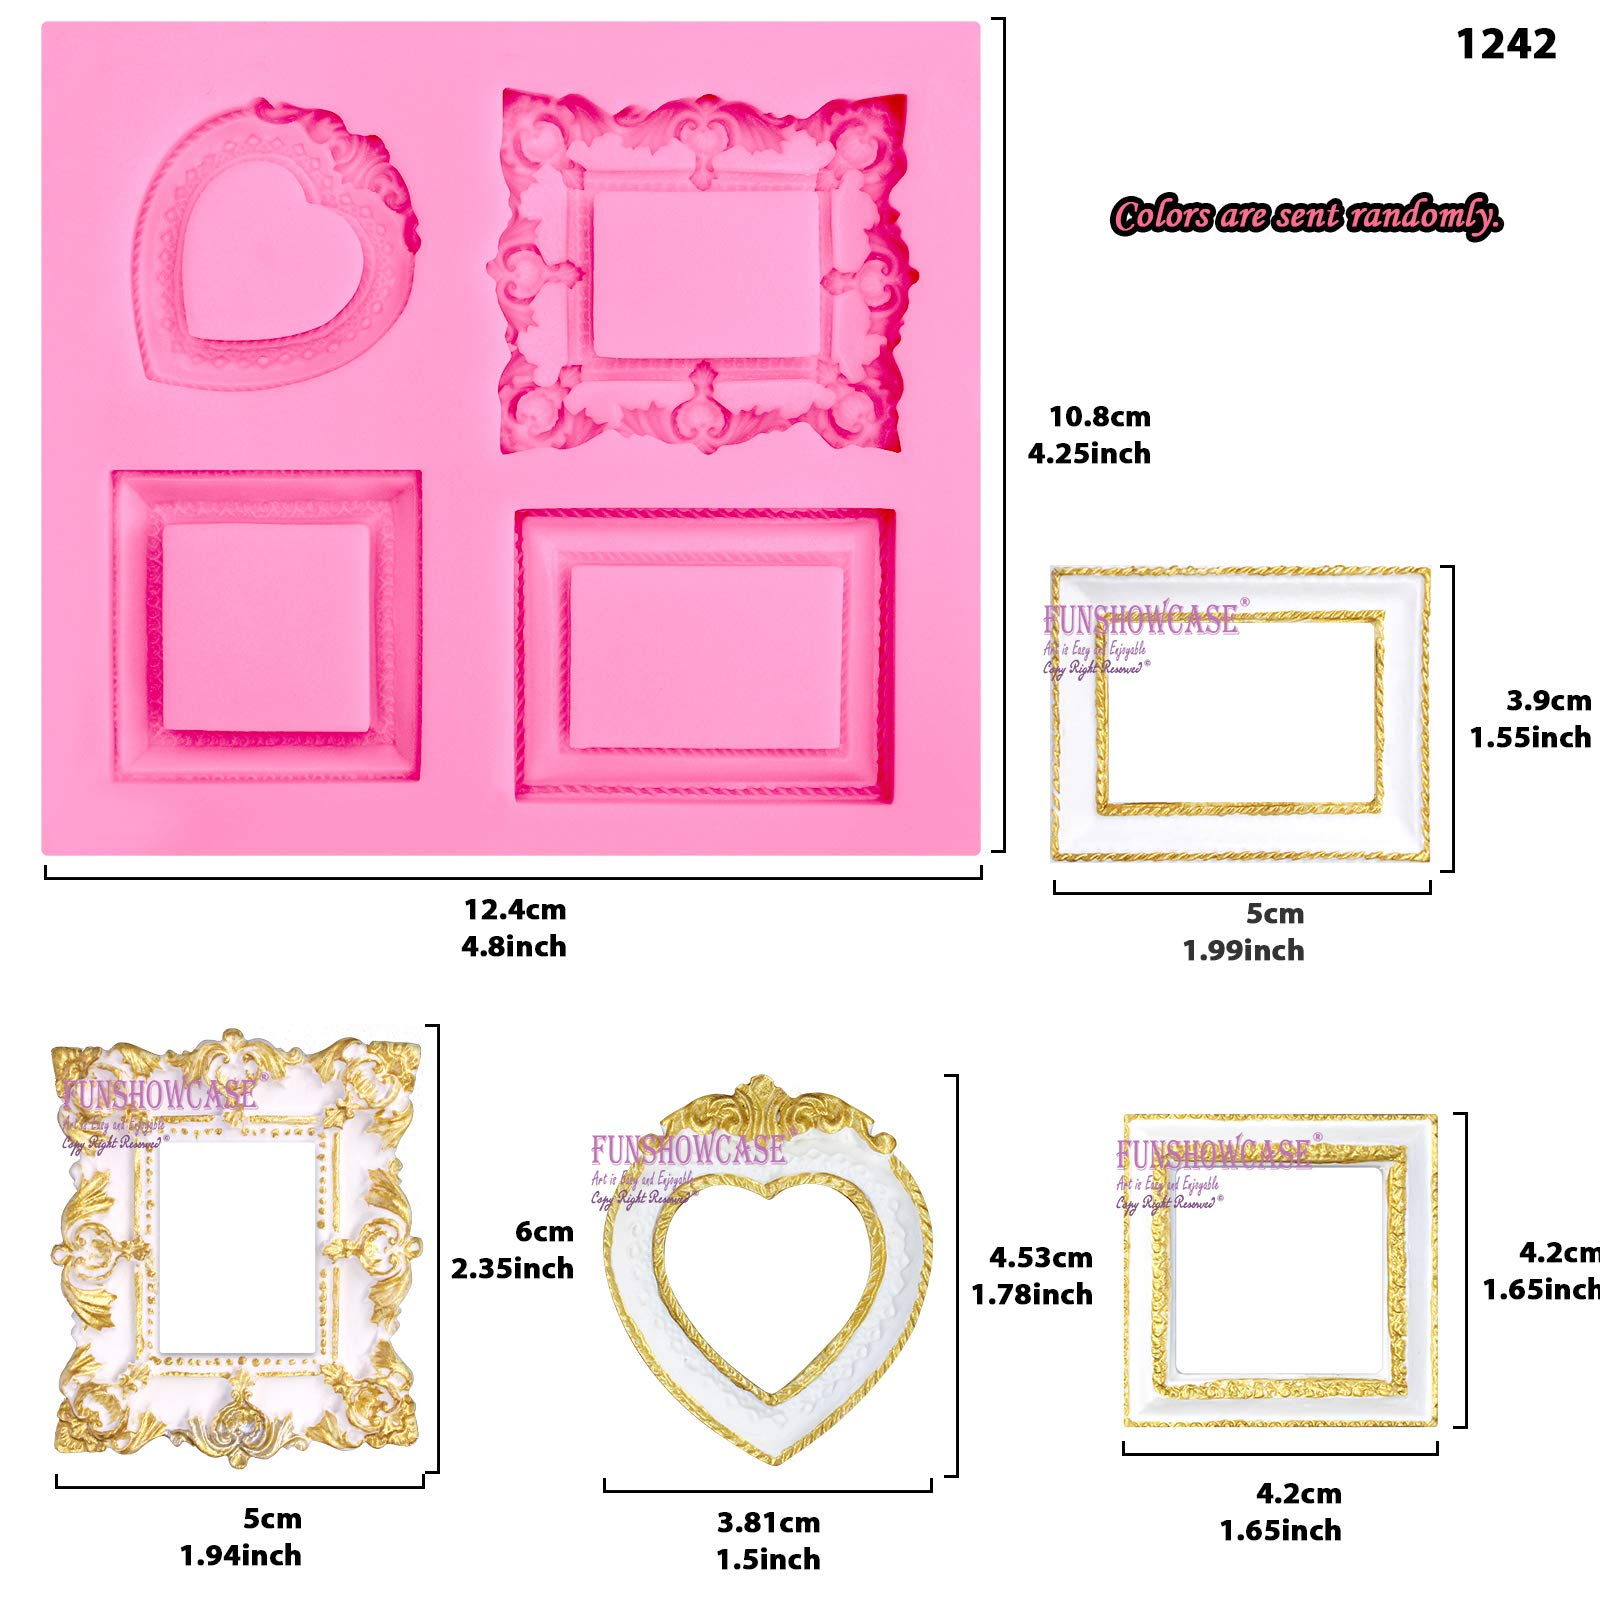 Funshowcase Mirror Frame Candy Silicone Mold, 3 in Set for Sugarcraft, Cake Decoration, Cupcake Topper, Chocolate, Fondant, Jewelry, Polymer Clay, Epoxy Resin, Crafting Projects by FUNSHOWCASE (Image #2)